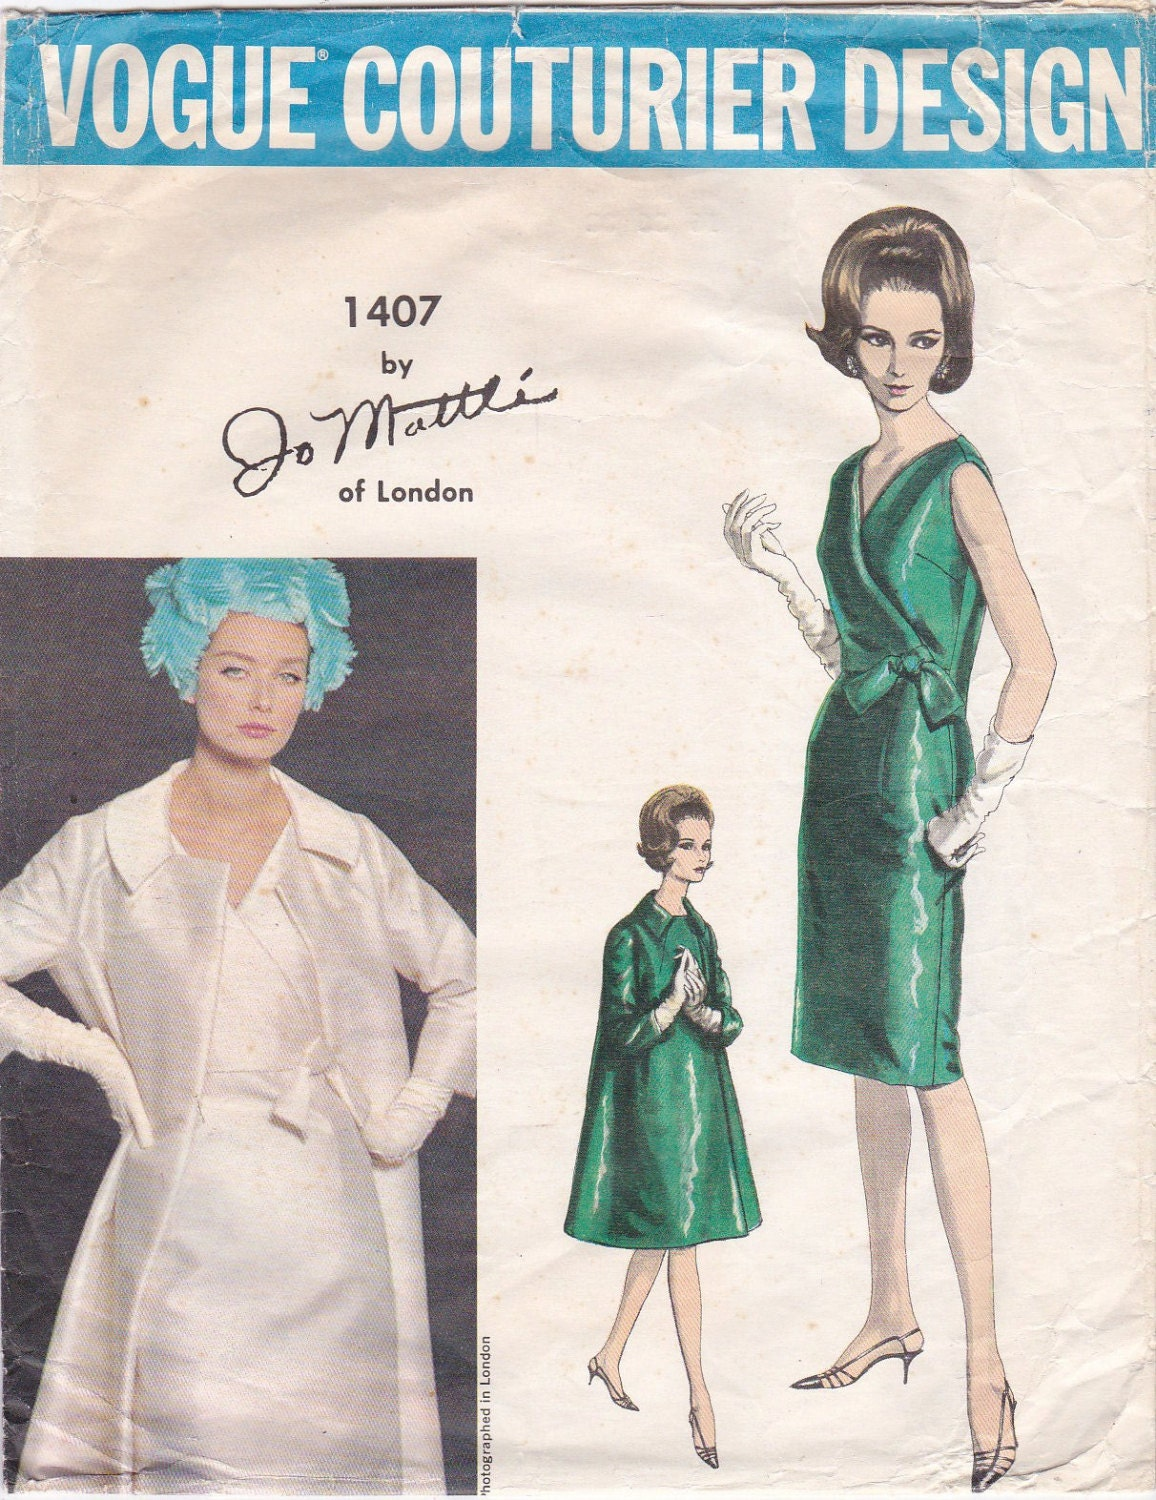 1960s Jo Mattli dress and coat pattern feat. Tania Mallet, Vogue Couturier Design 1407